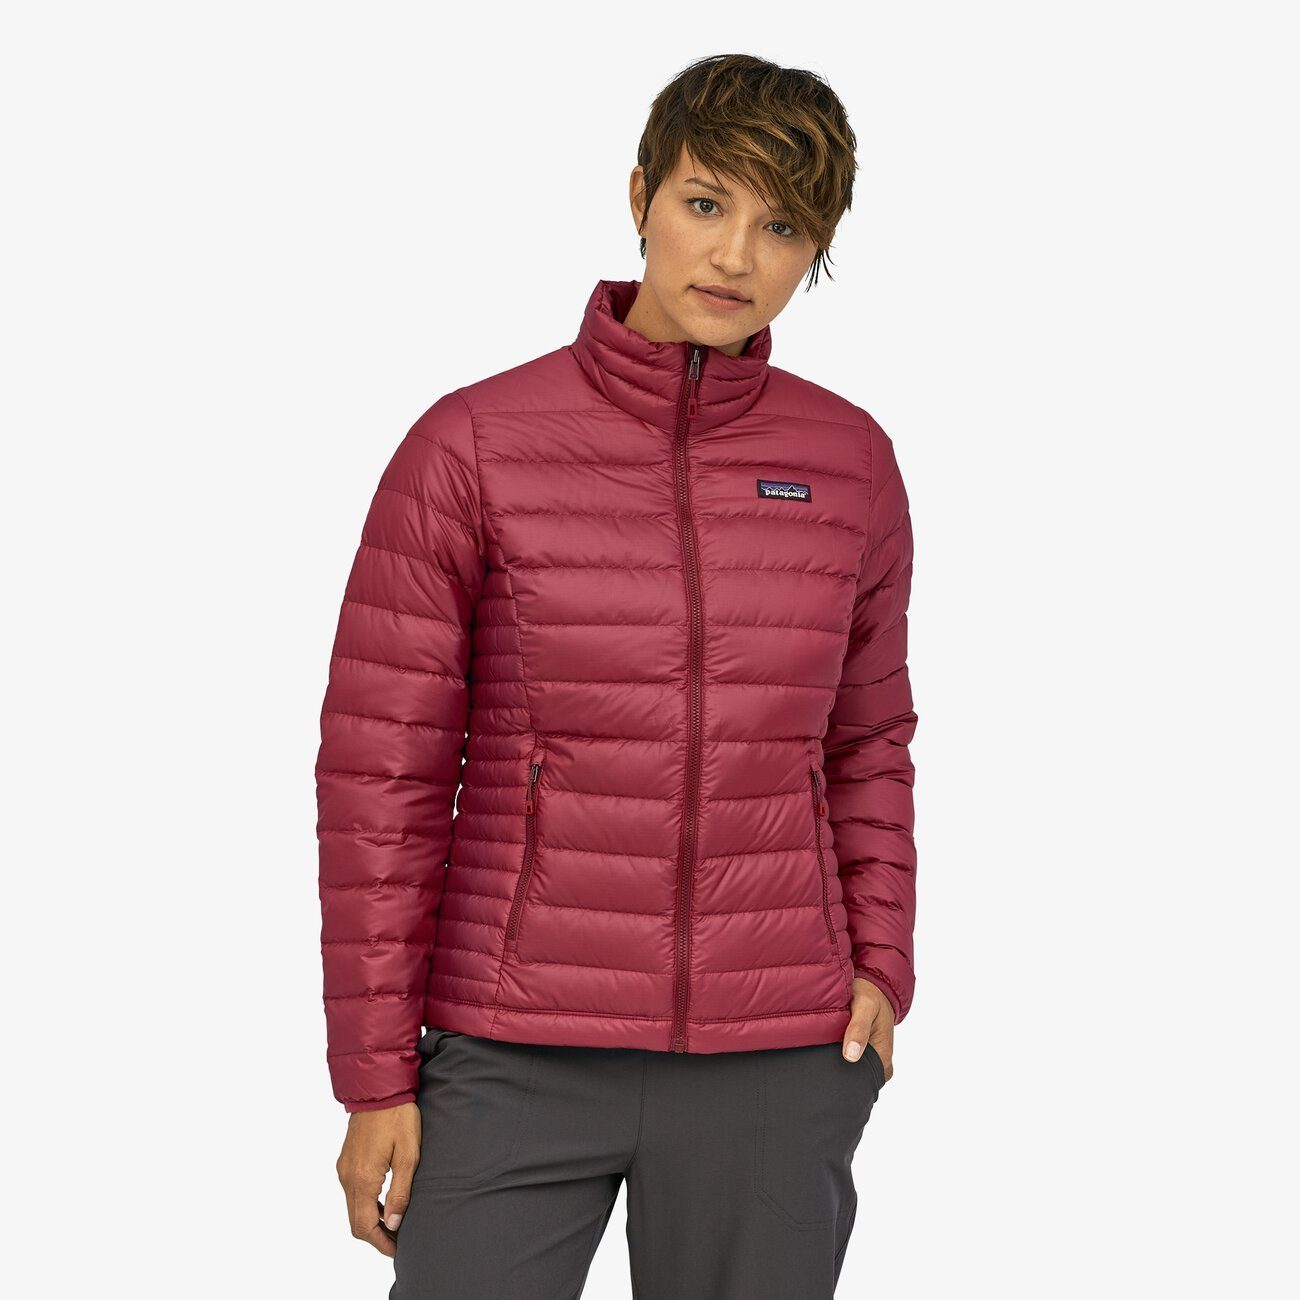 Patagonia - W's Down Sweater Jacket -  Sustainable Down - Weekendbee - sustainable sportswear